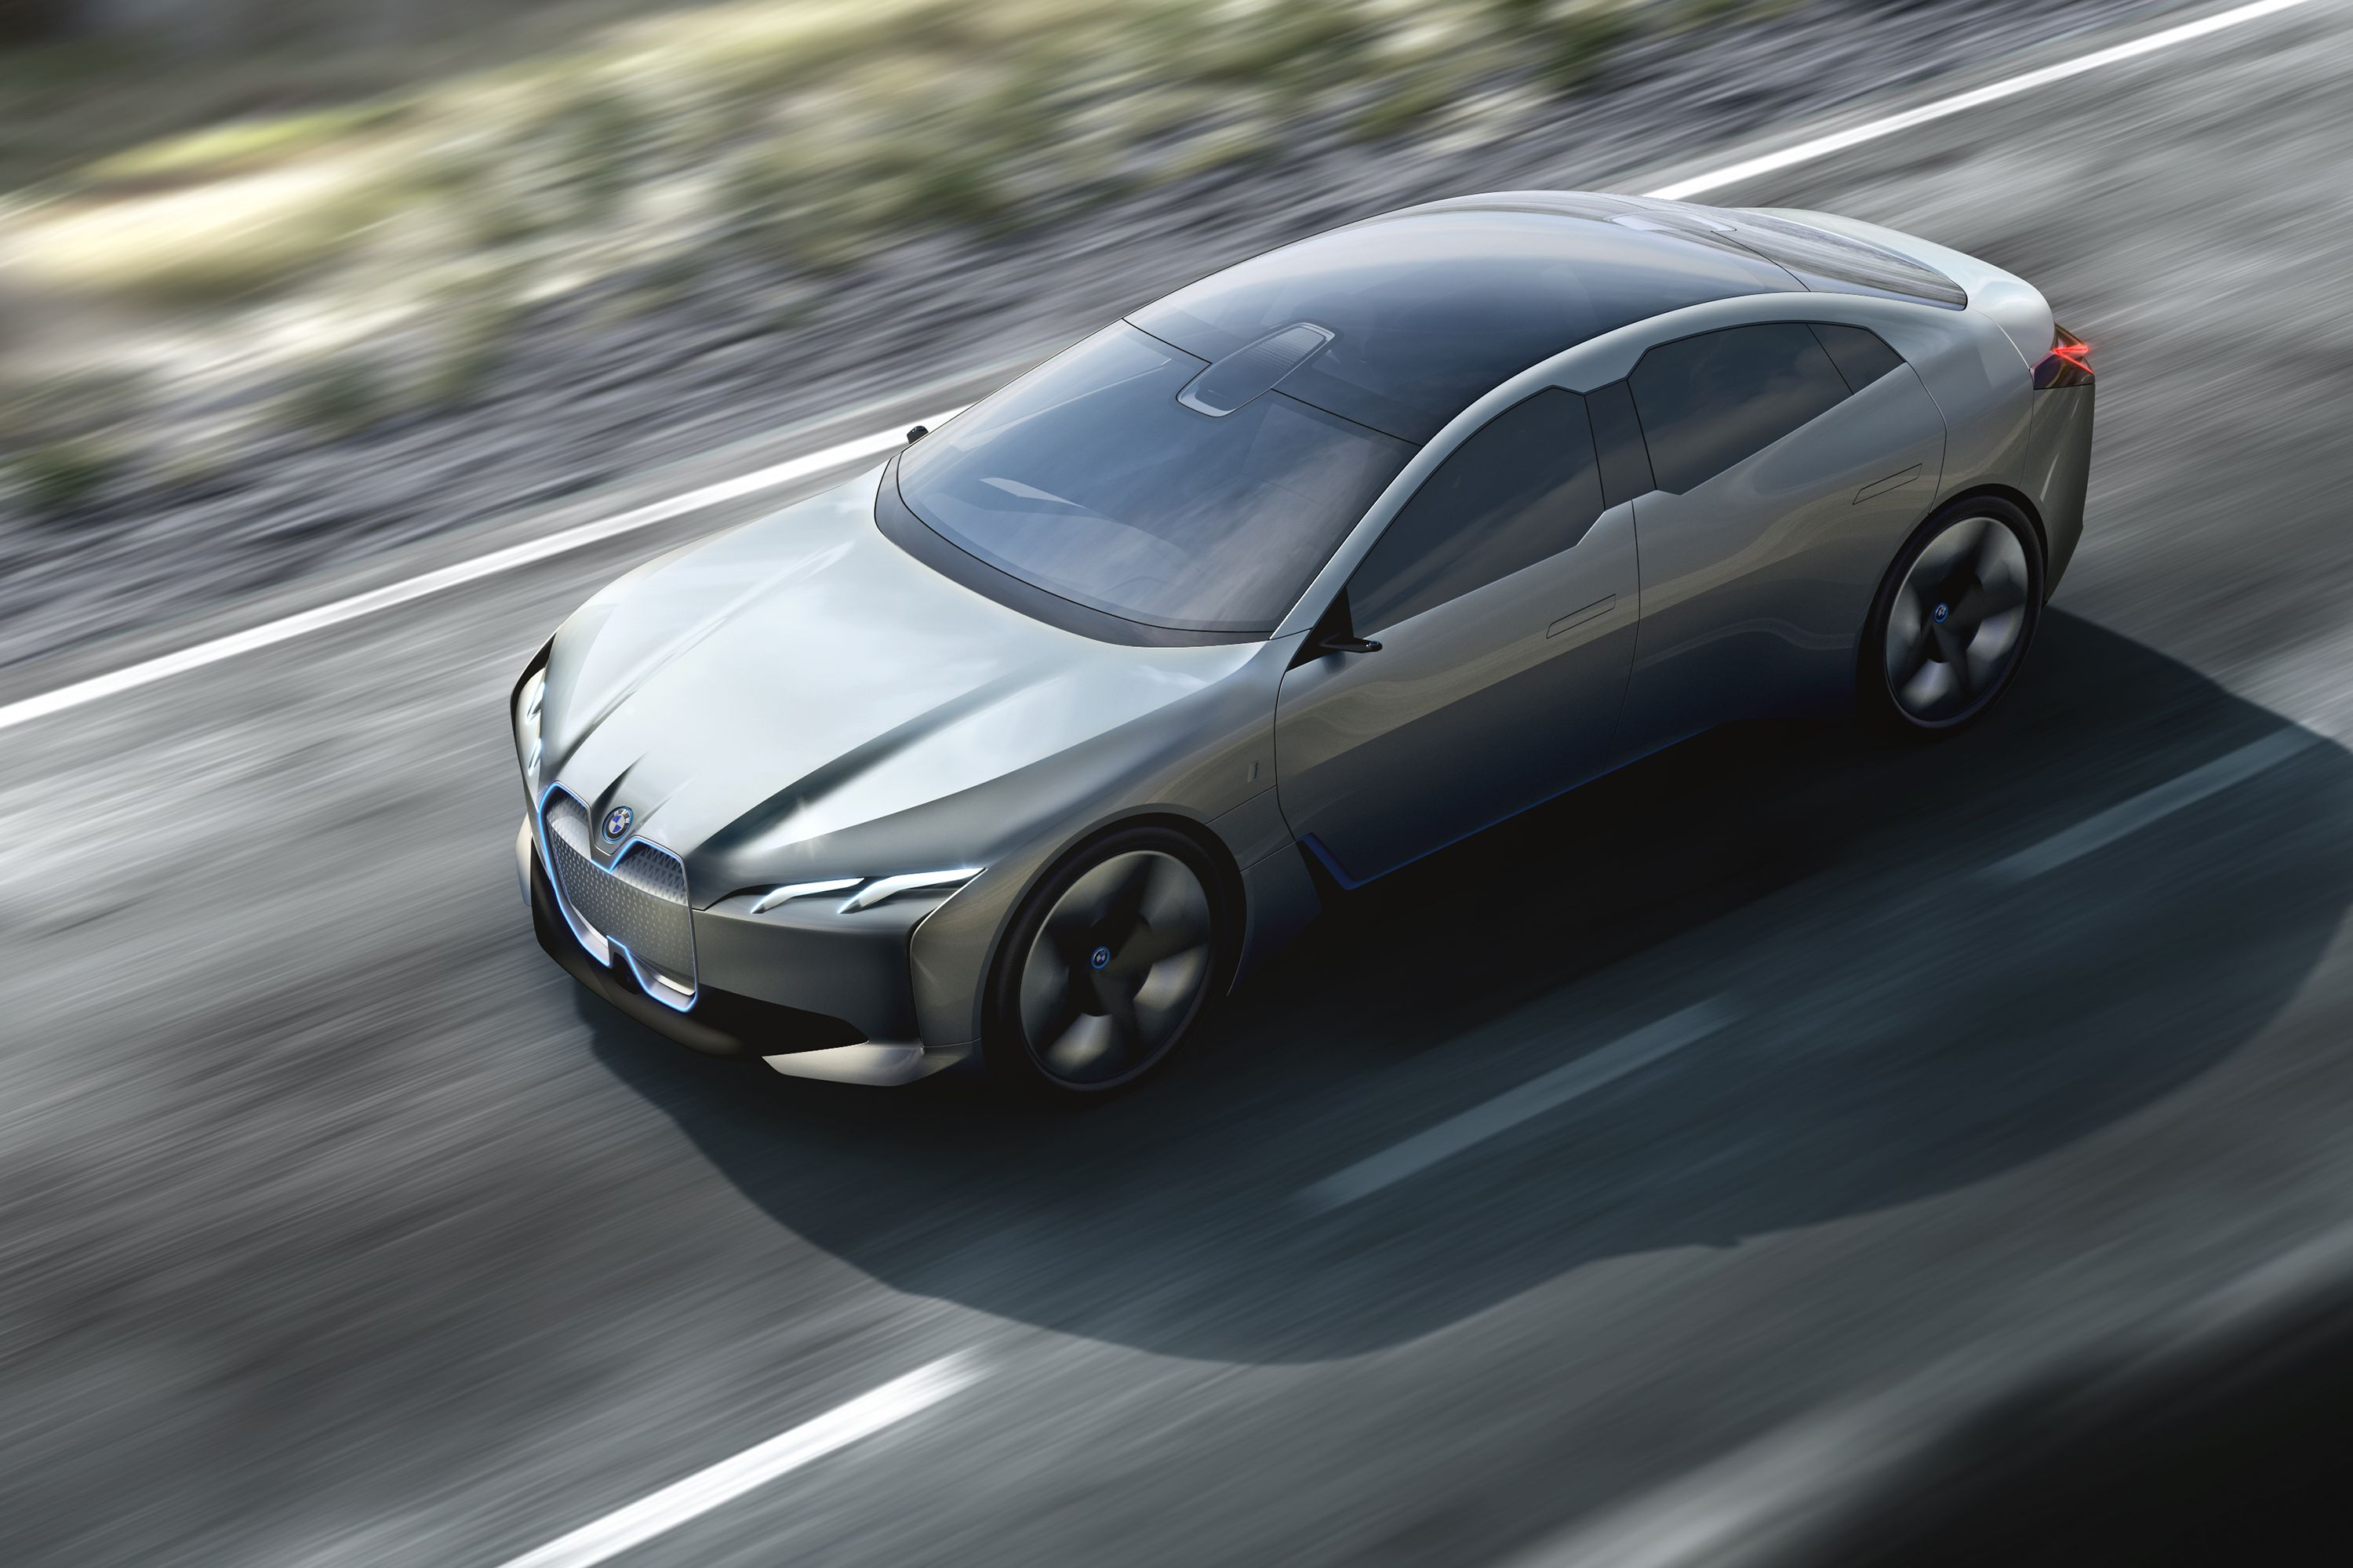 BMW's First Electric Sedan Will Have More Power Than an M3